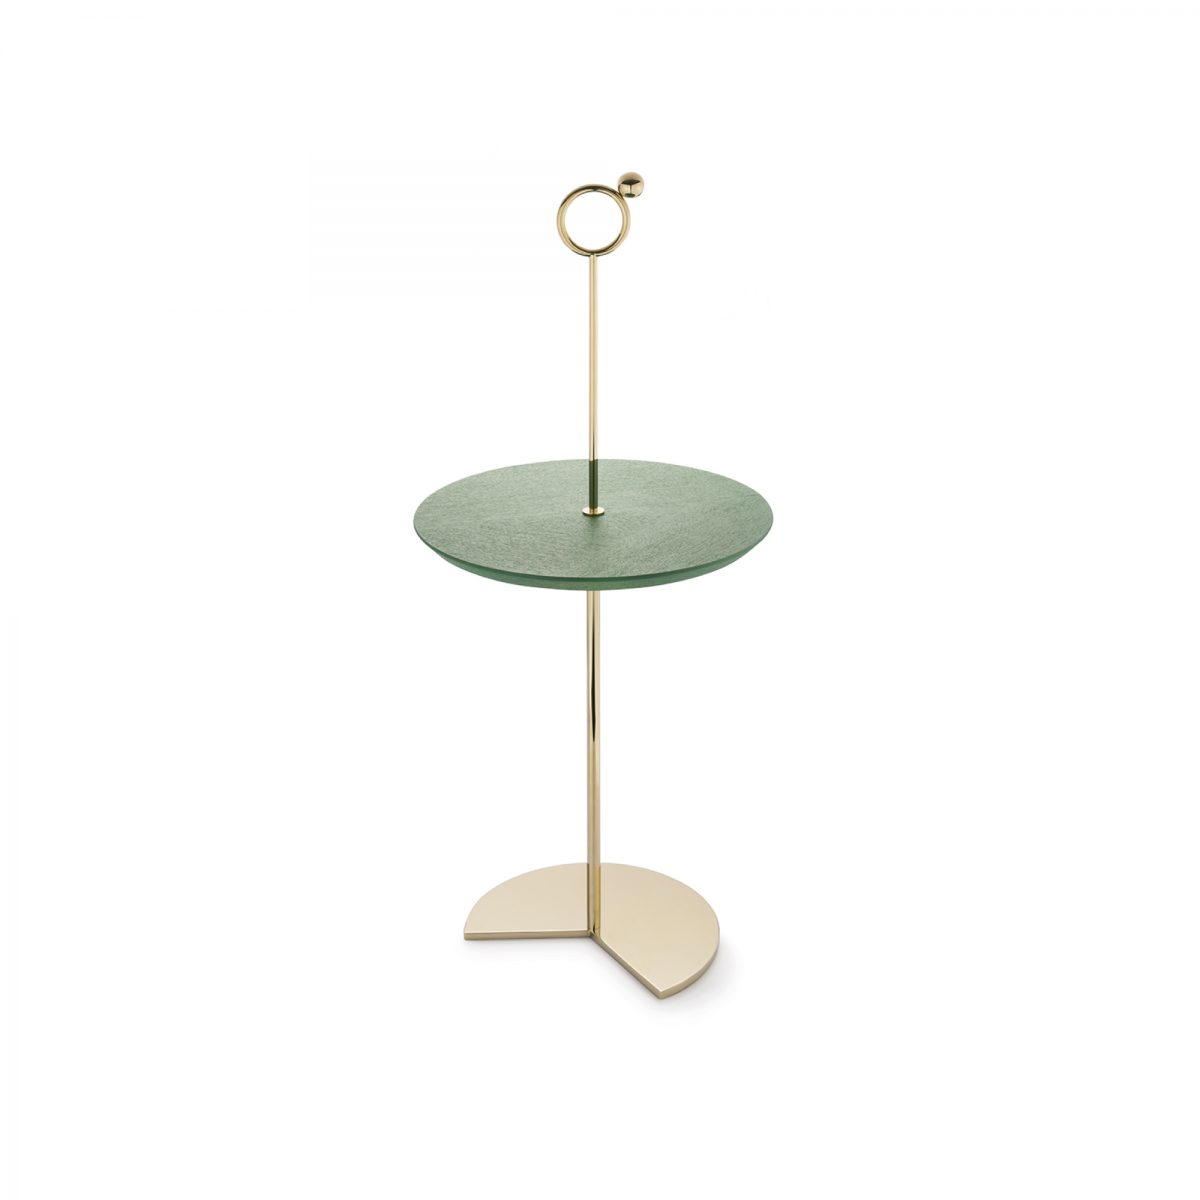 1-off_the_moon_05_tables_side_tables_green